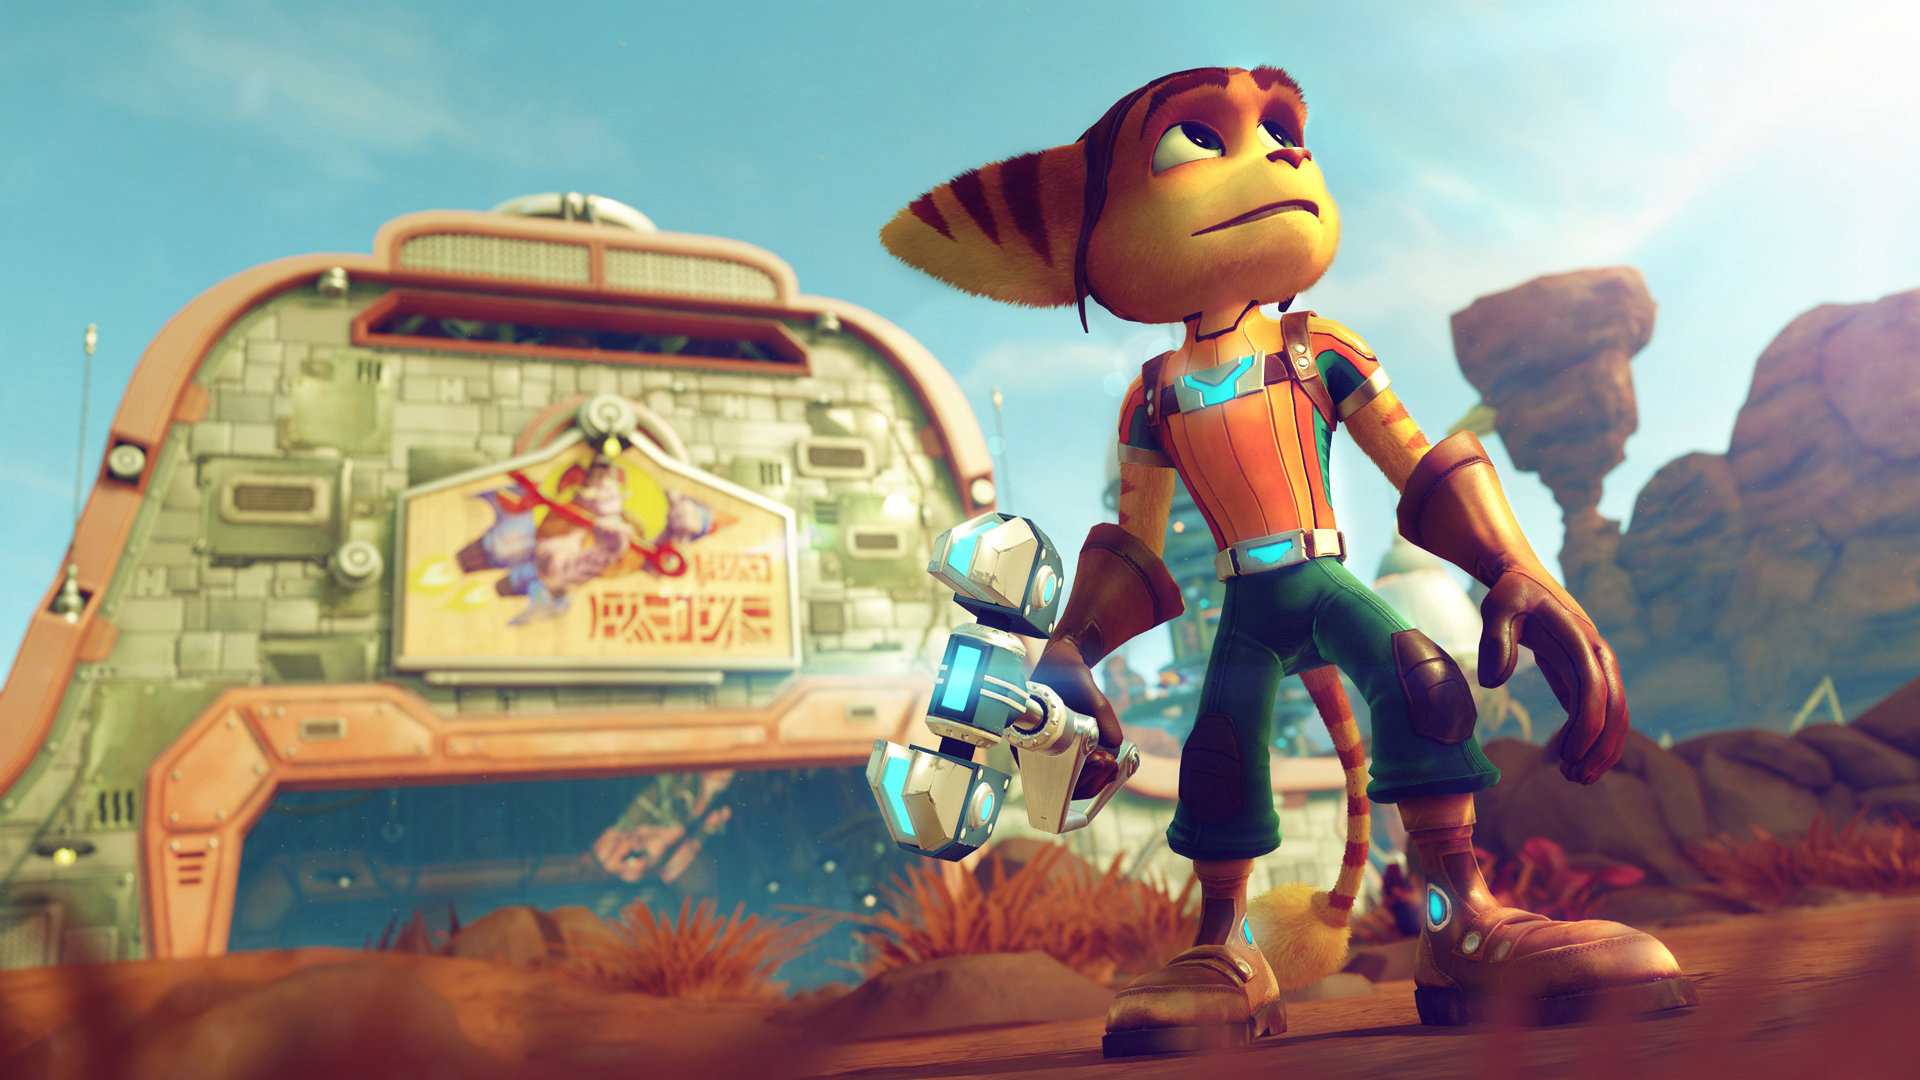 (Update) Ratchet & Clank now has a 60fps update for PS5 screenshot